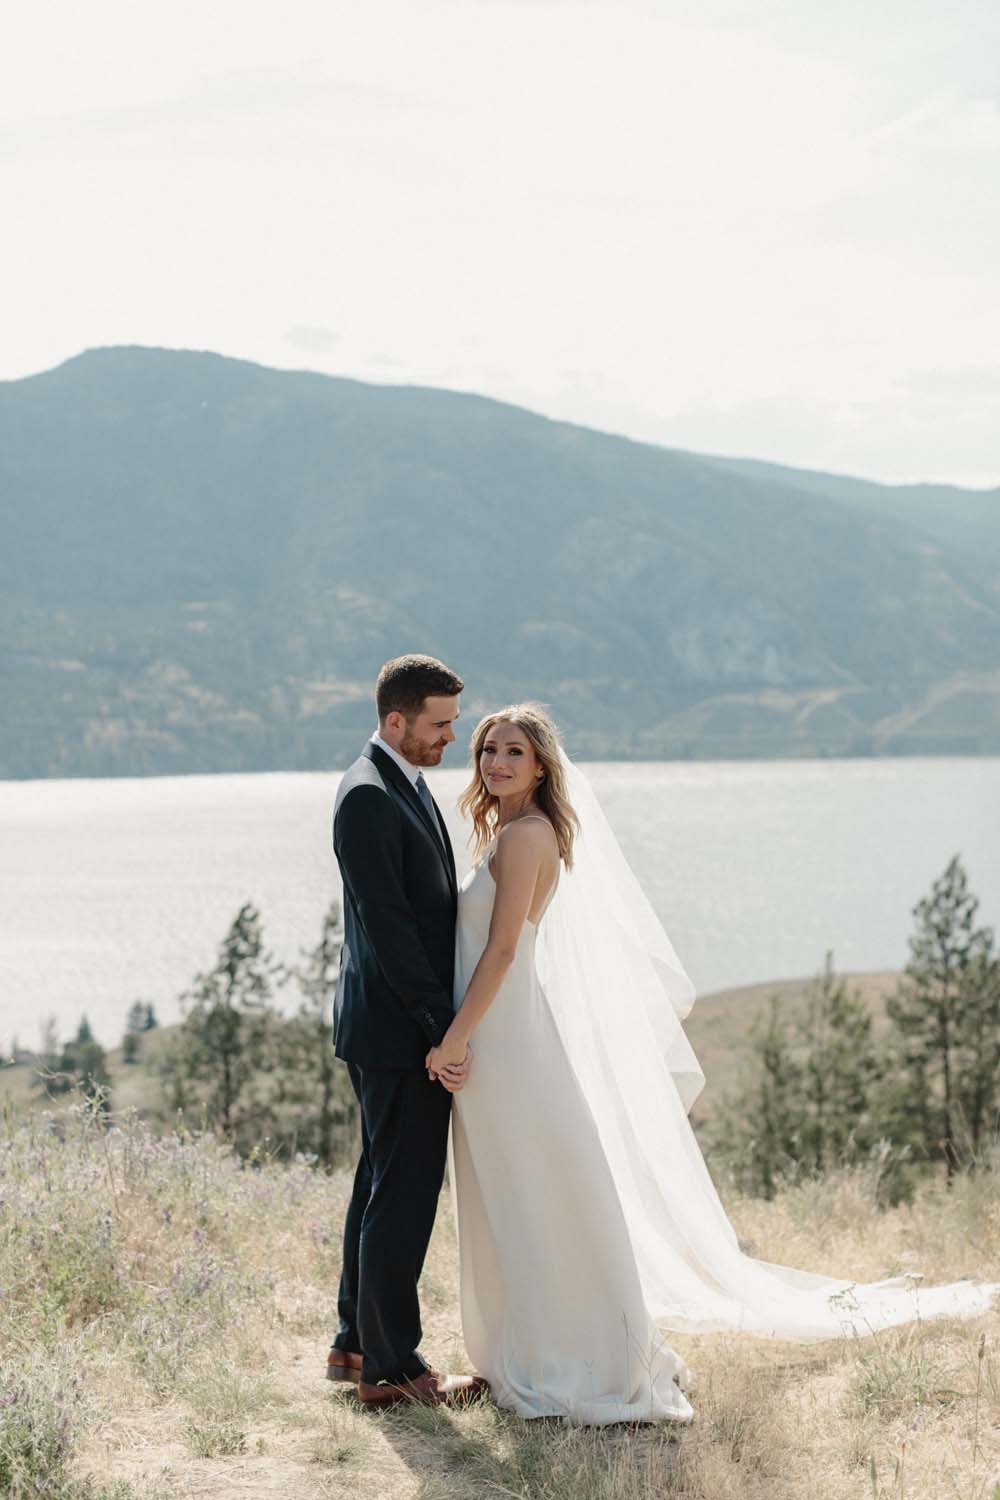 Jill Lansky of The August Diaries' Modern-Chic Wedding In British Columbia - bride and groom